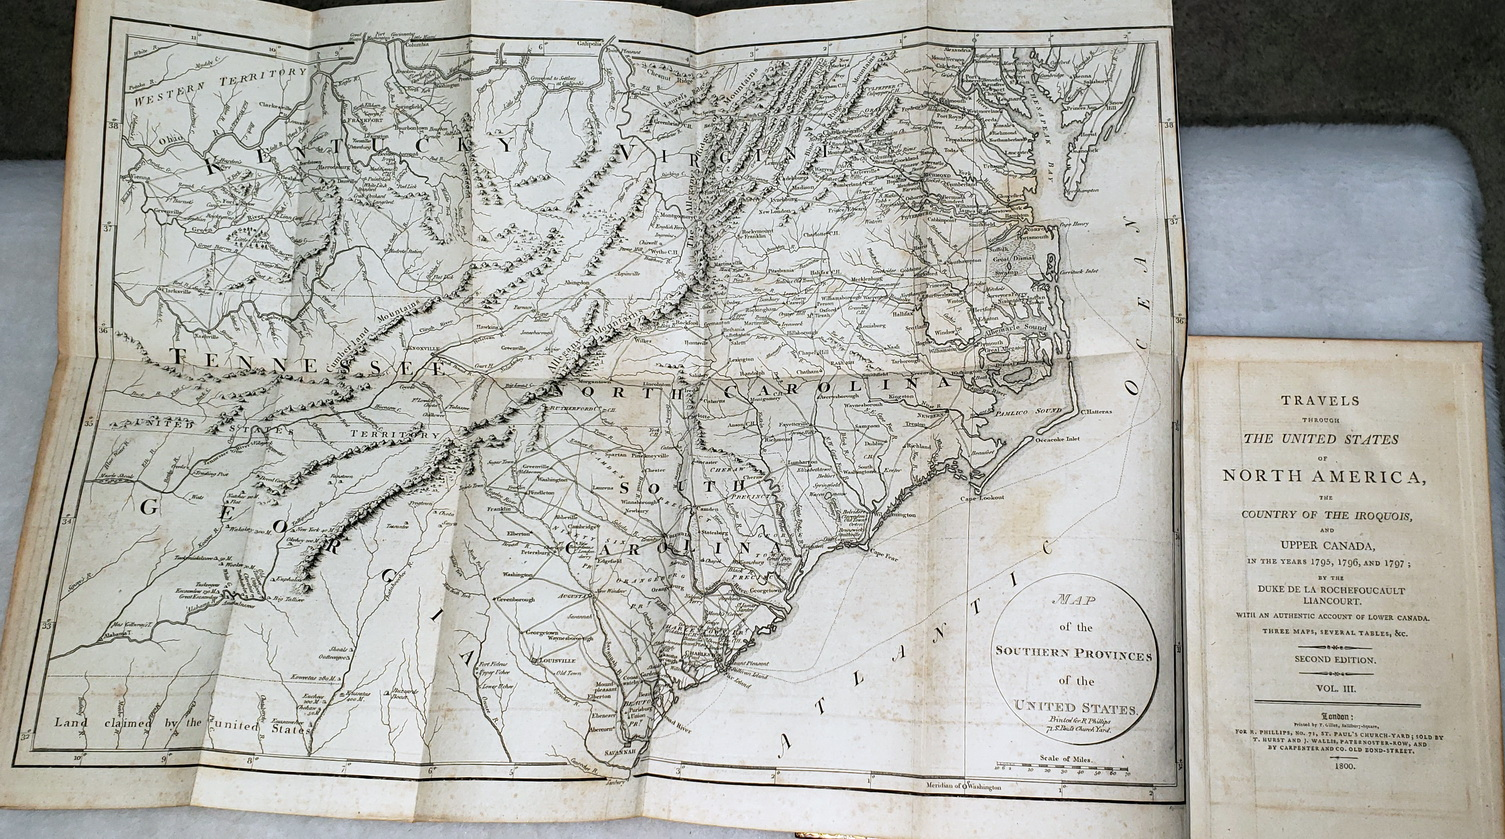 Image for Travels Through the United States of North America, the Country of the Iroquois, and Upper Canada, in the Years 1795, 1796, and 1797 (Four Volumes)